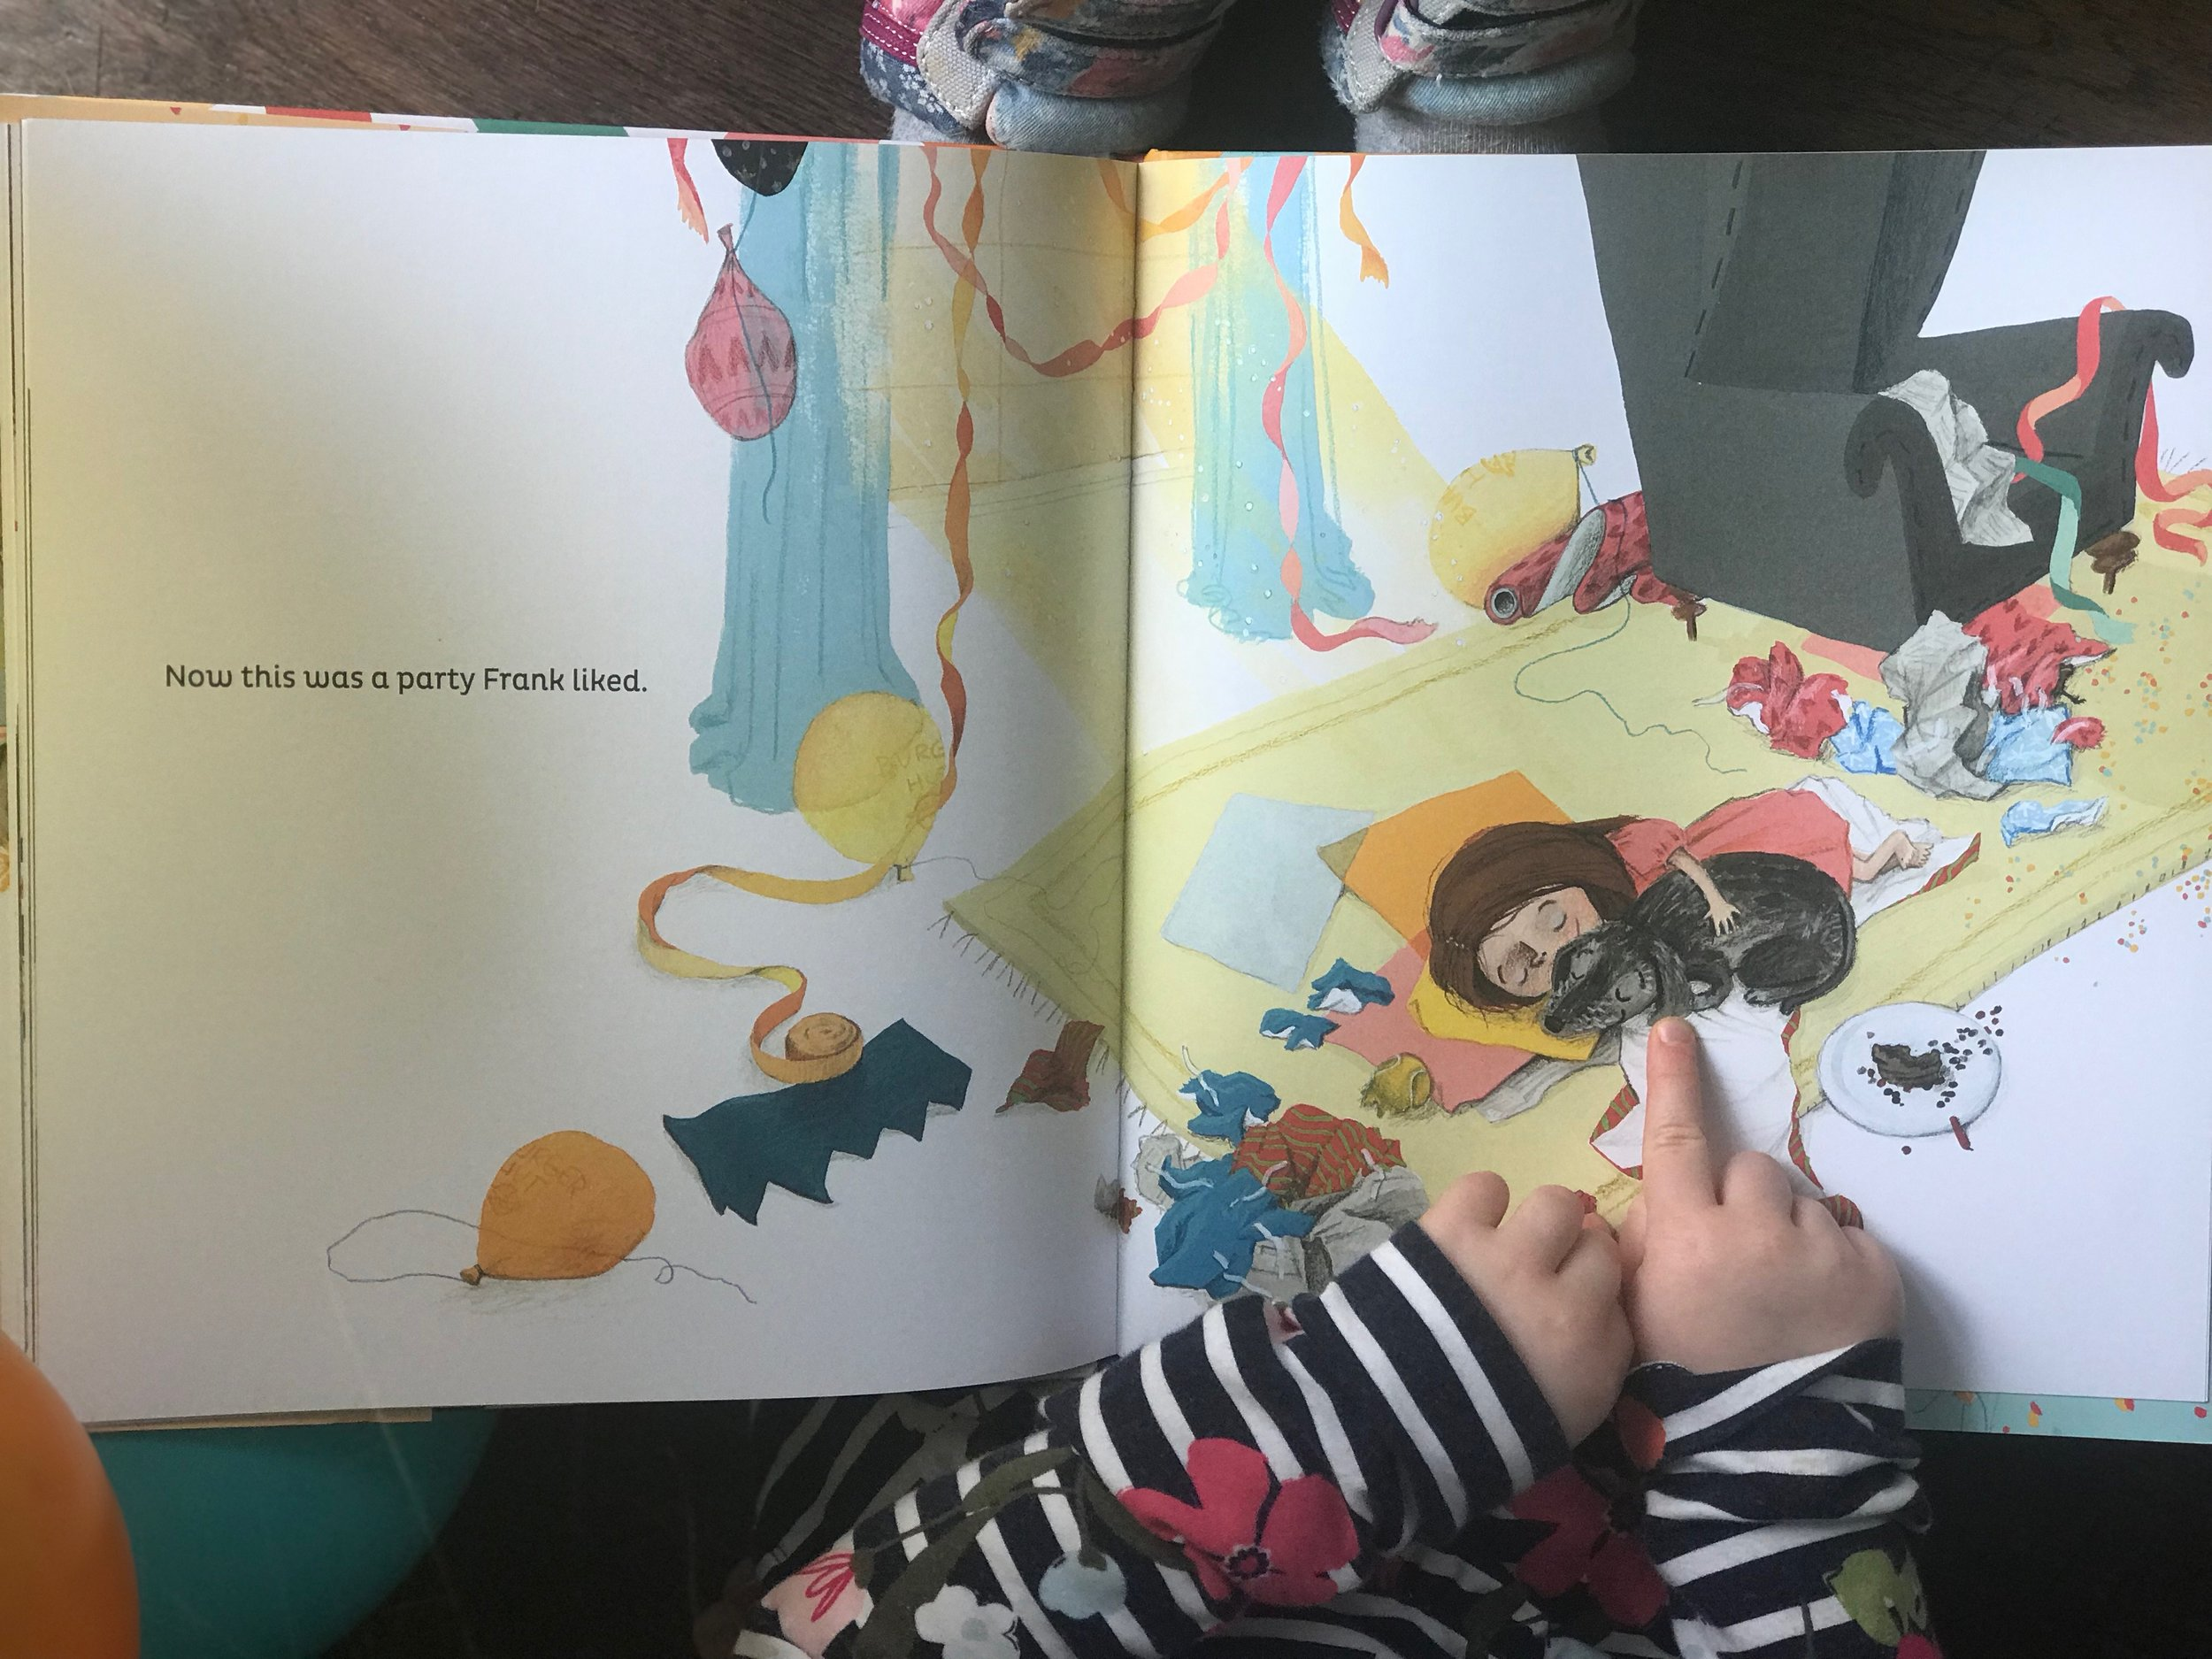 Let's have a dog party picture book teaching empathy to kids 6.jpeg